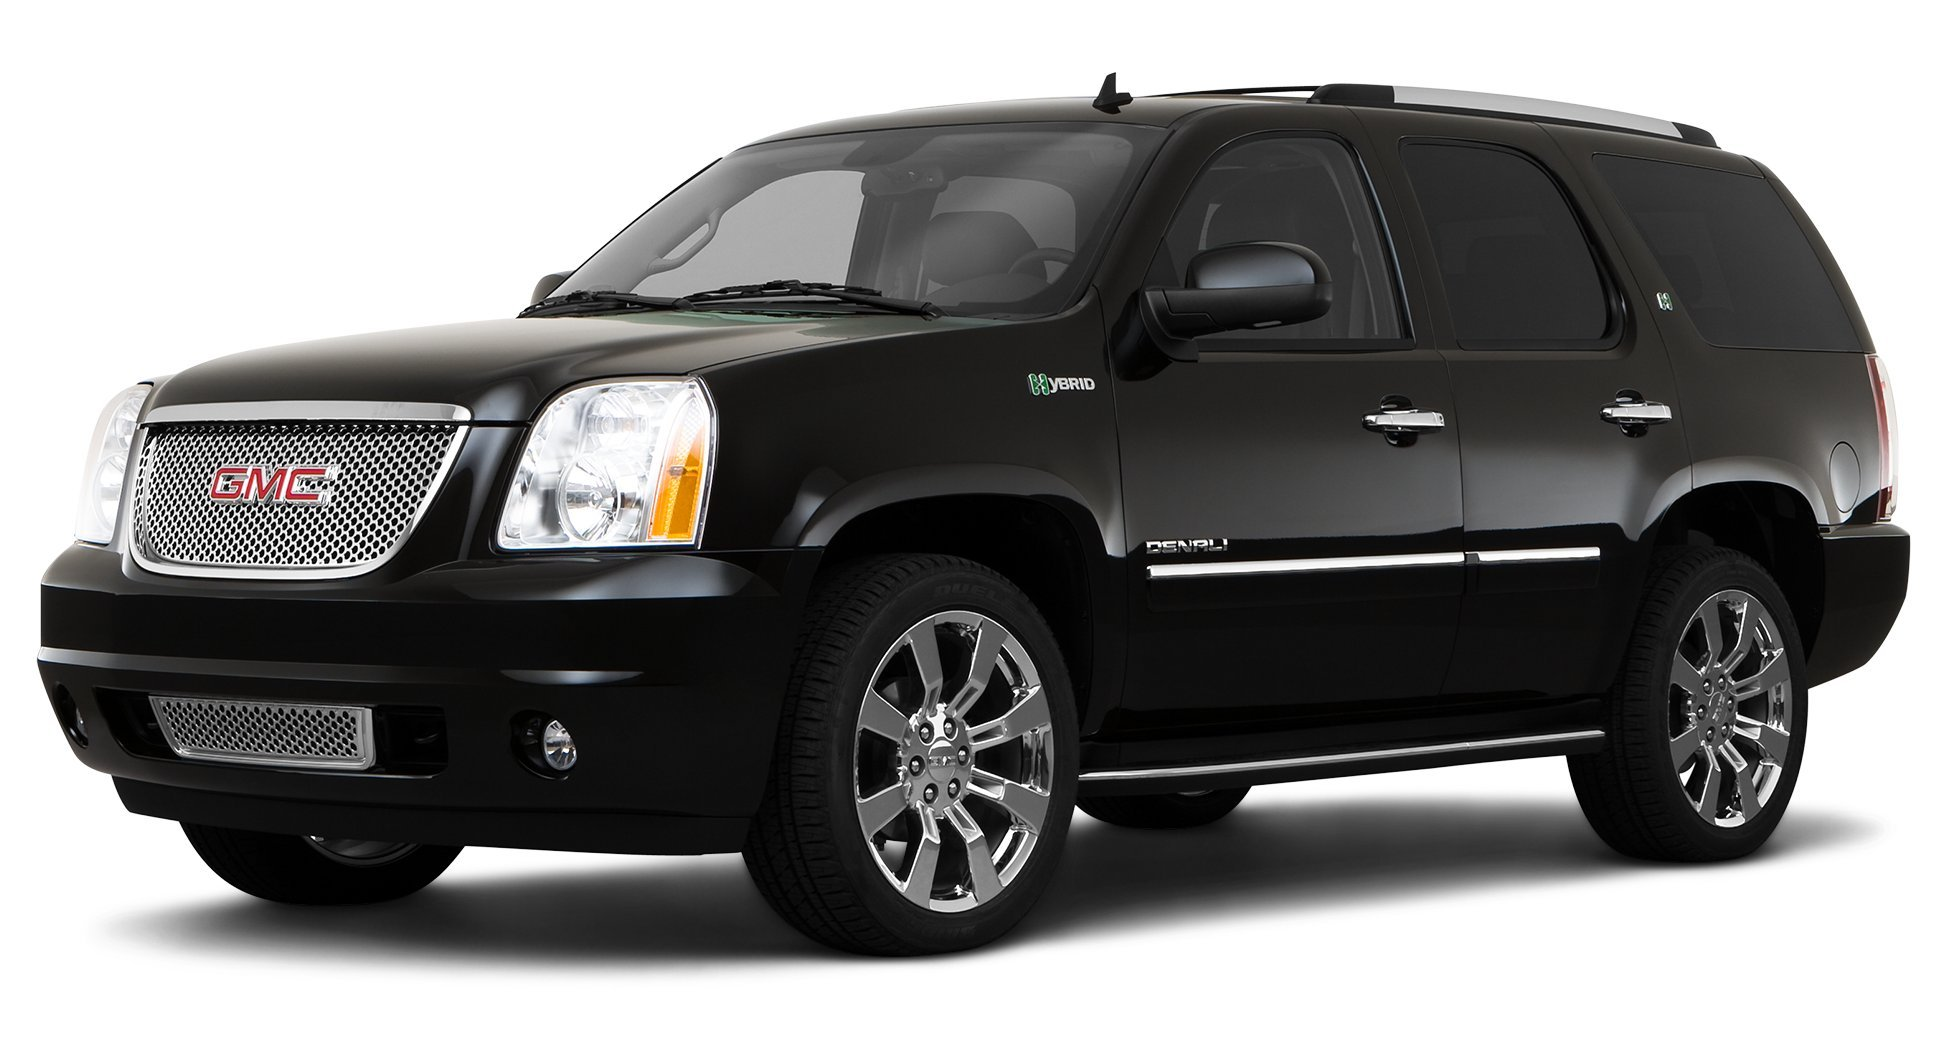 2010 chevrolet tahoe reviews images and. Black Bedroom Furniture Sets. Home Design Ideas